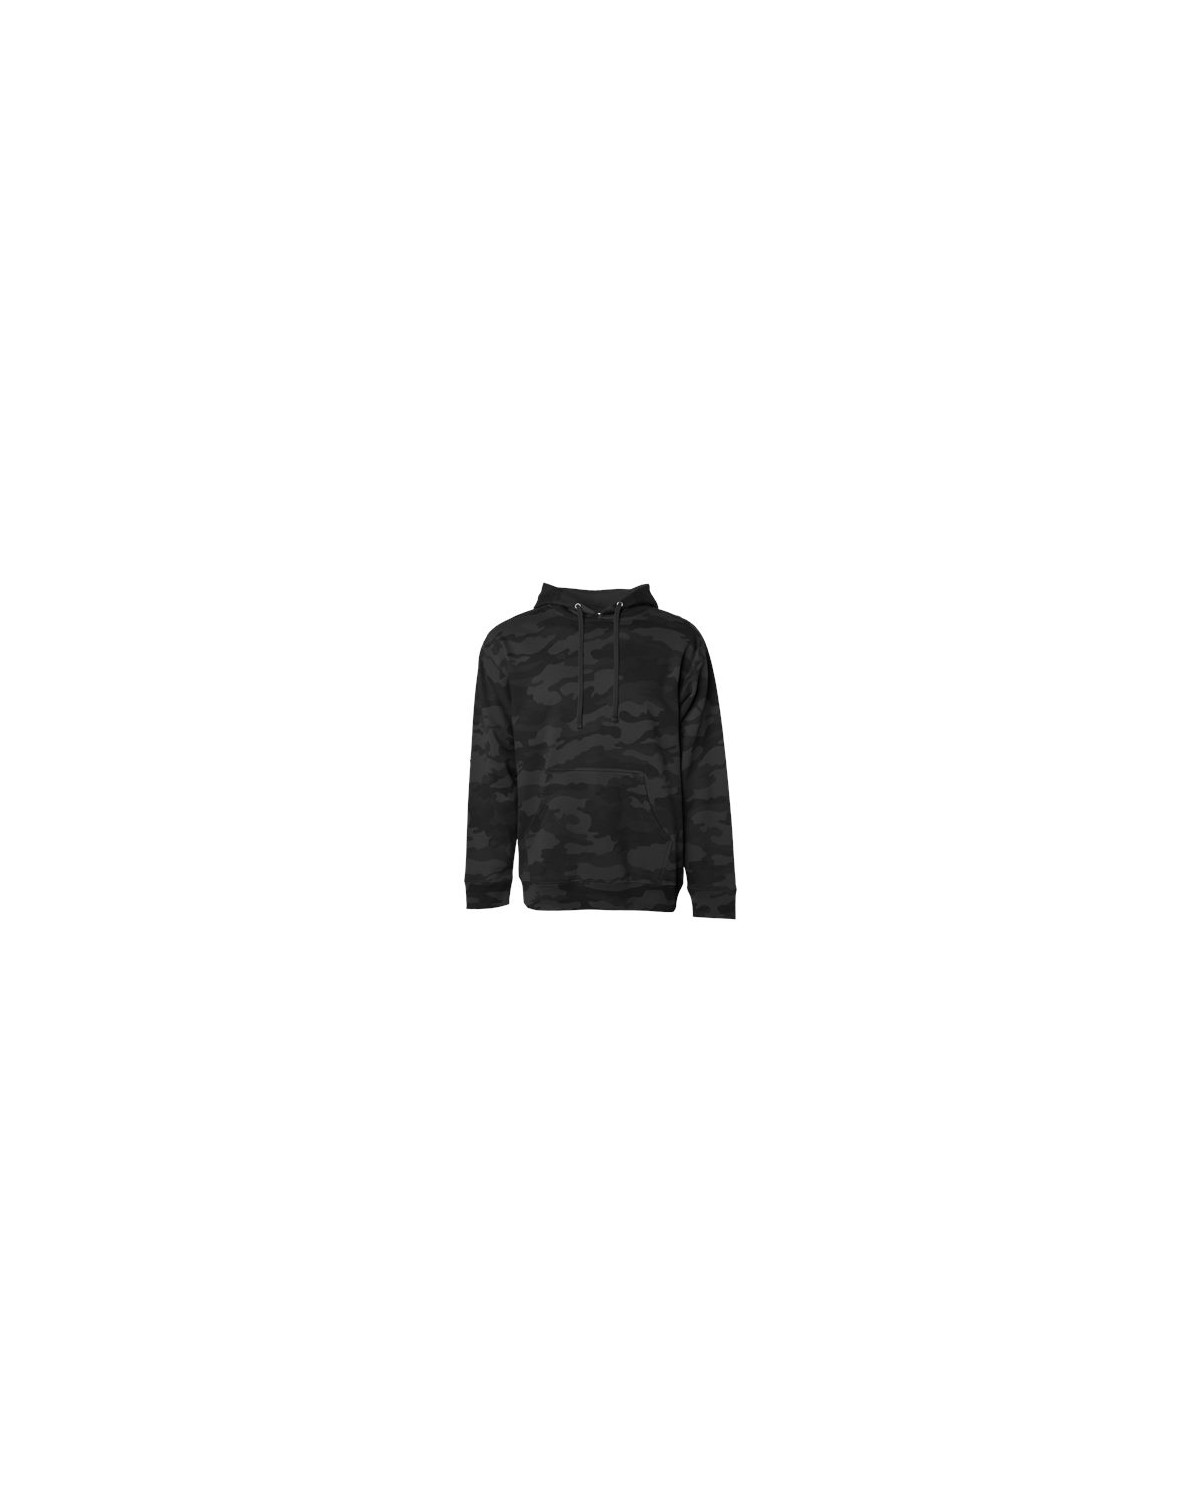 SS4500 Independent Trading Co. BLACK CAMO